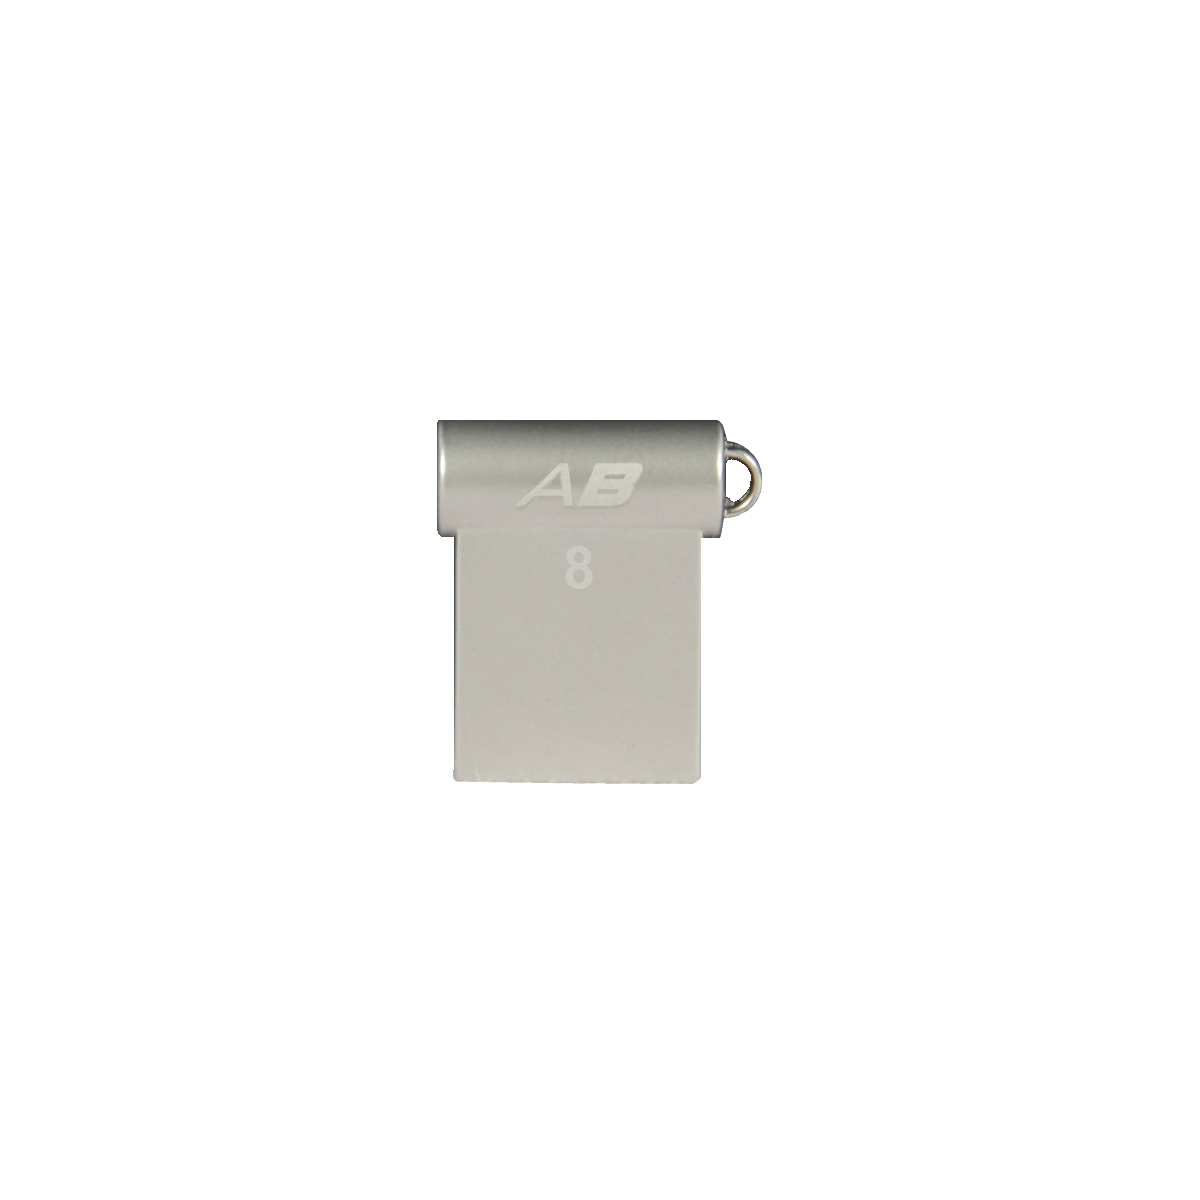 Pen Drive 8GB Autobahn USB 2.0 PSF8GLSABUSB - Patriot